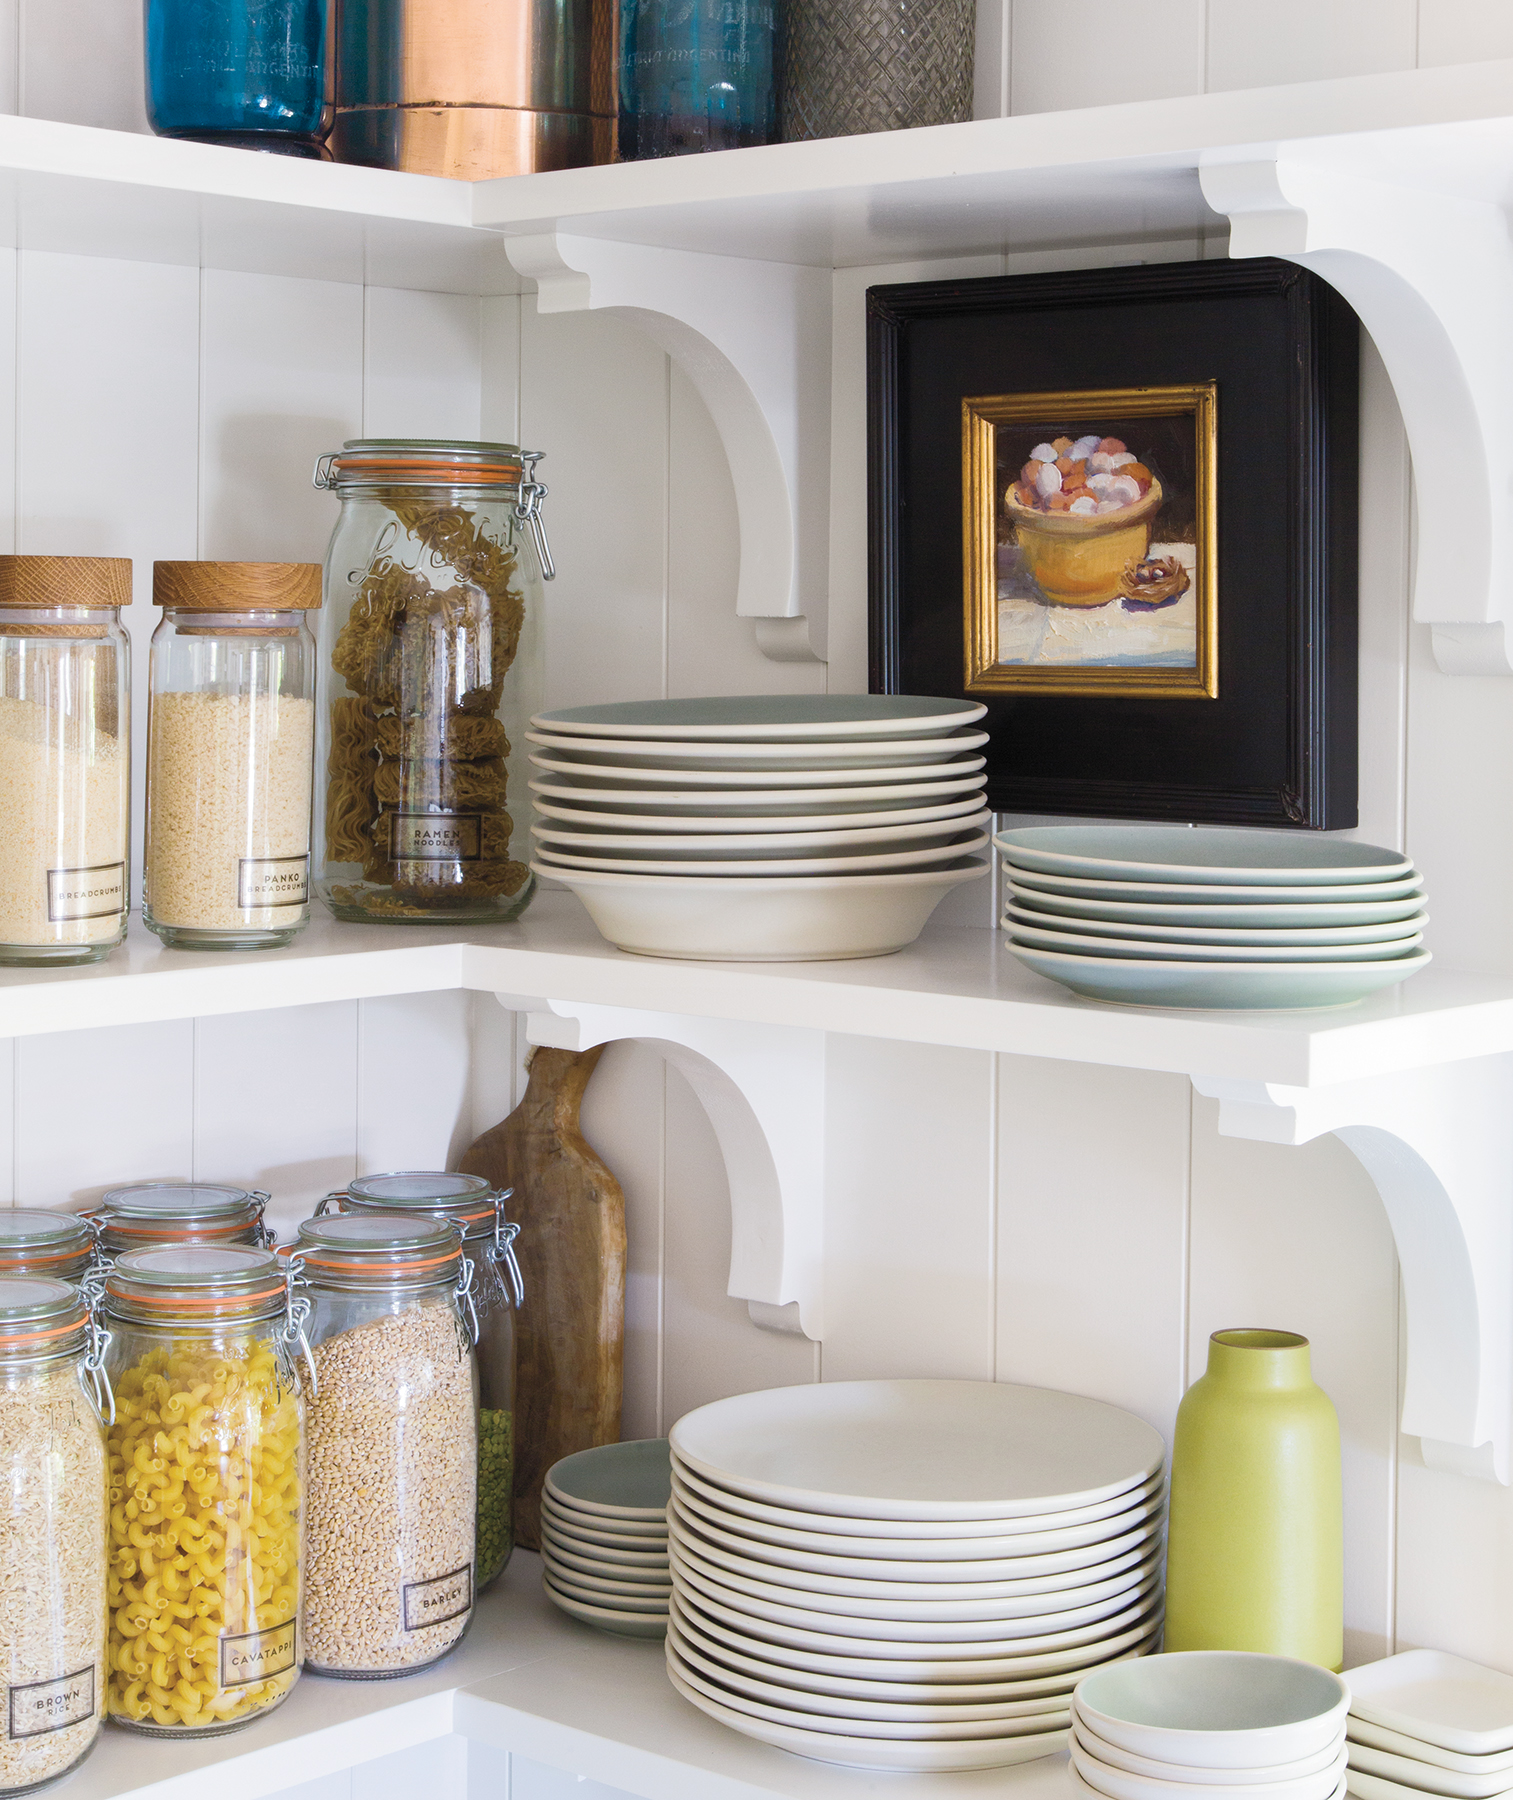 Kitchen open shelving with baking essentials, bowls, plates